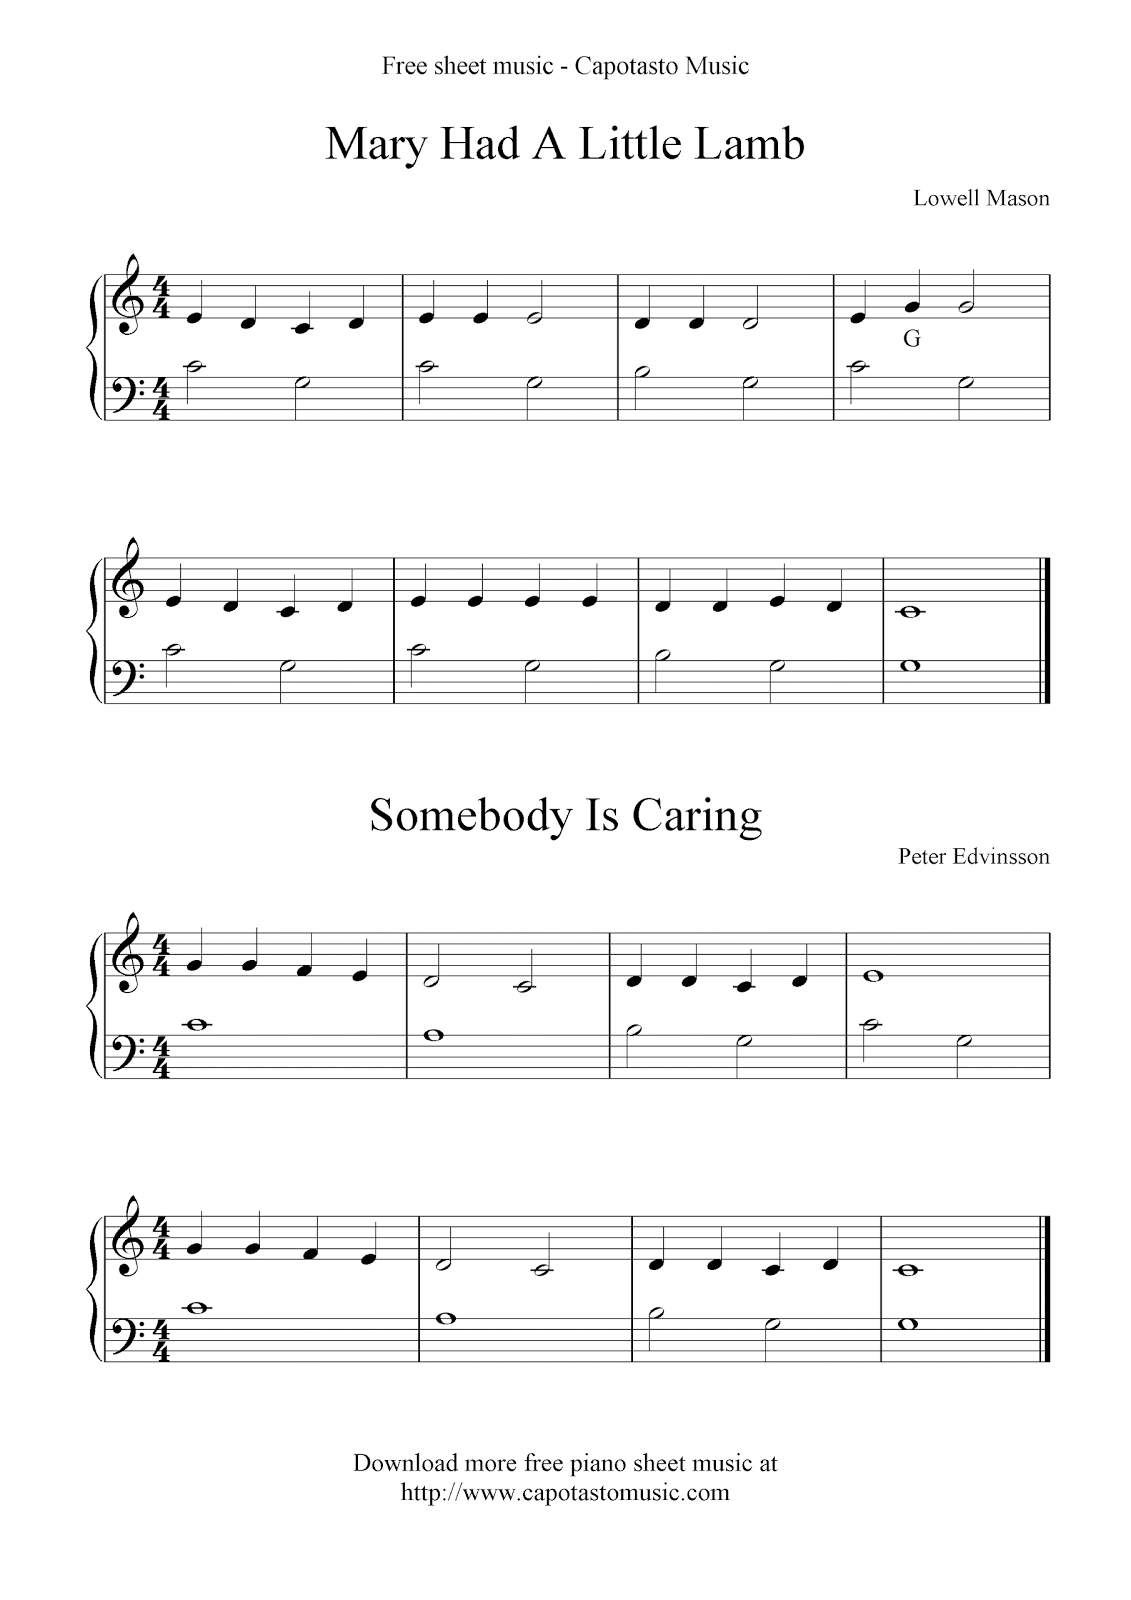 Free Sheet Music Scores Free Basic Piano Sheet Music